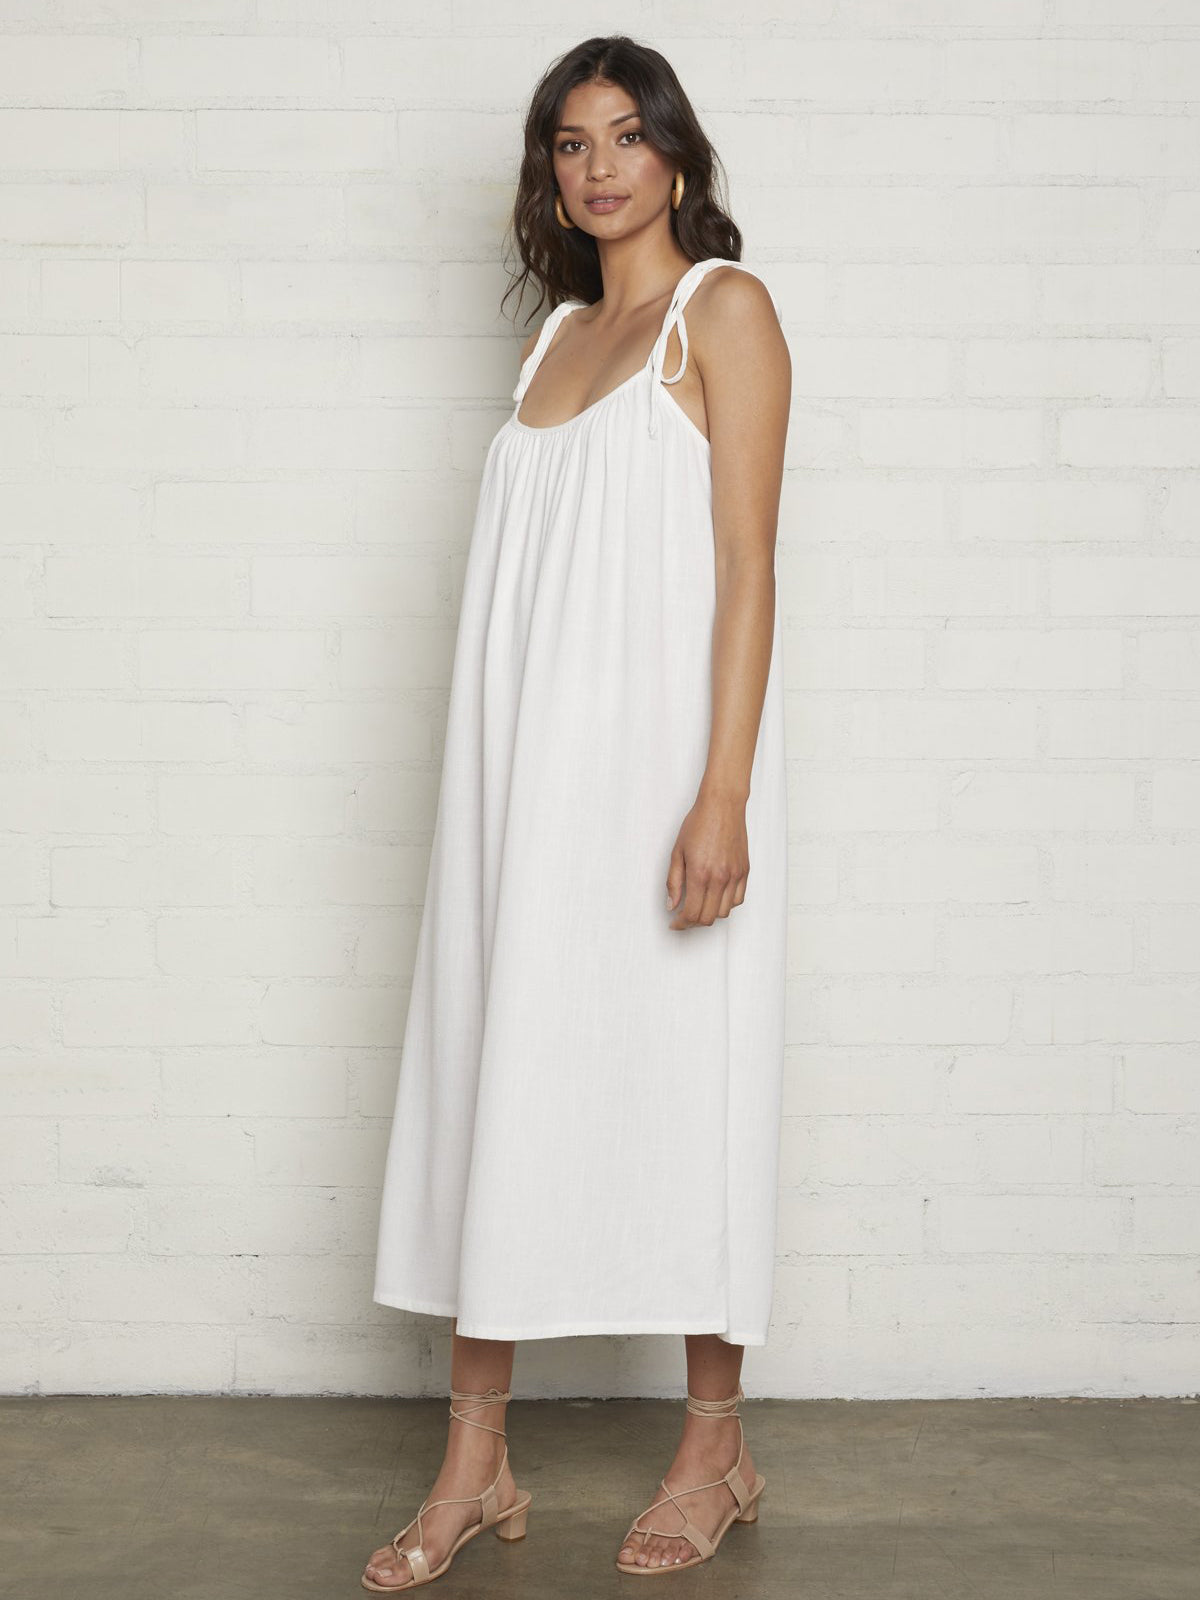 Rachel Pally Linen Caity Dress - Chalk White | TILDEN